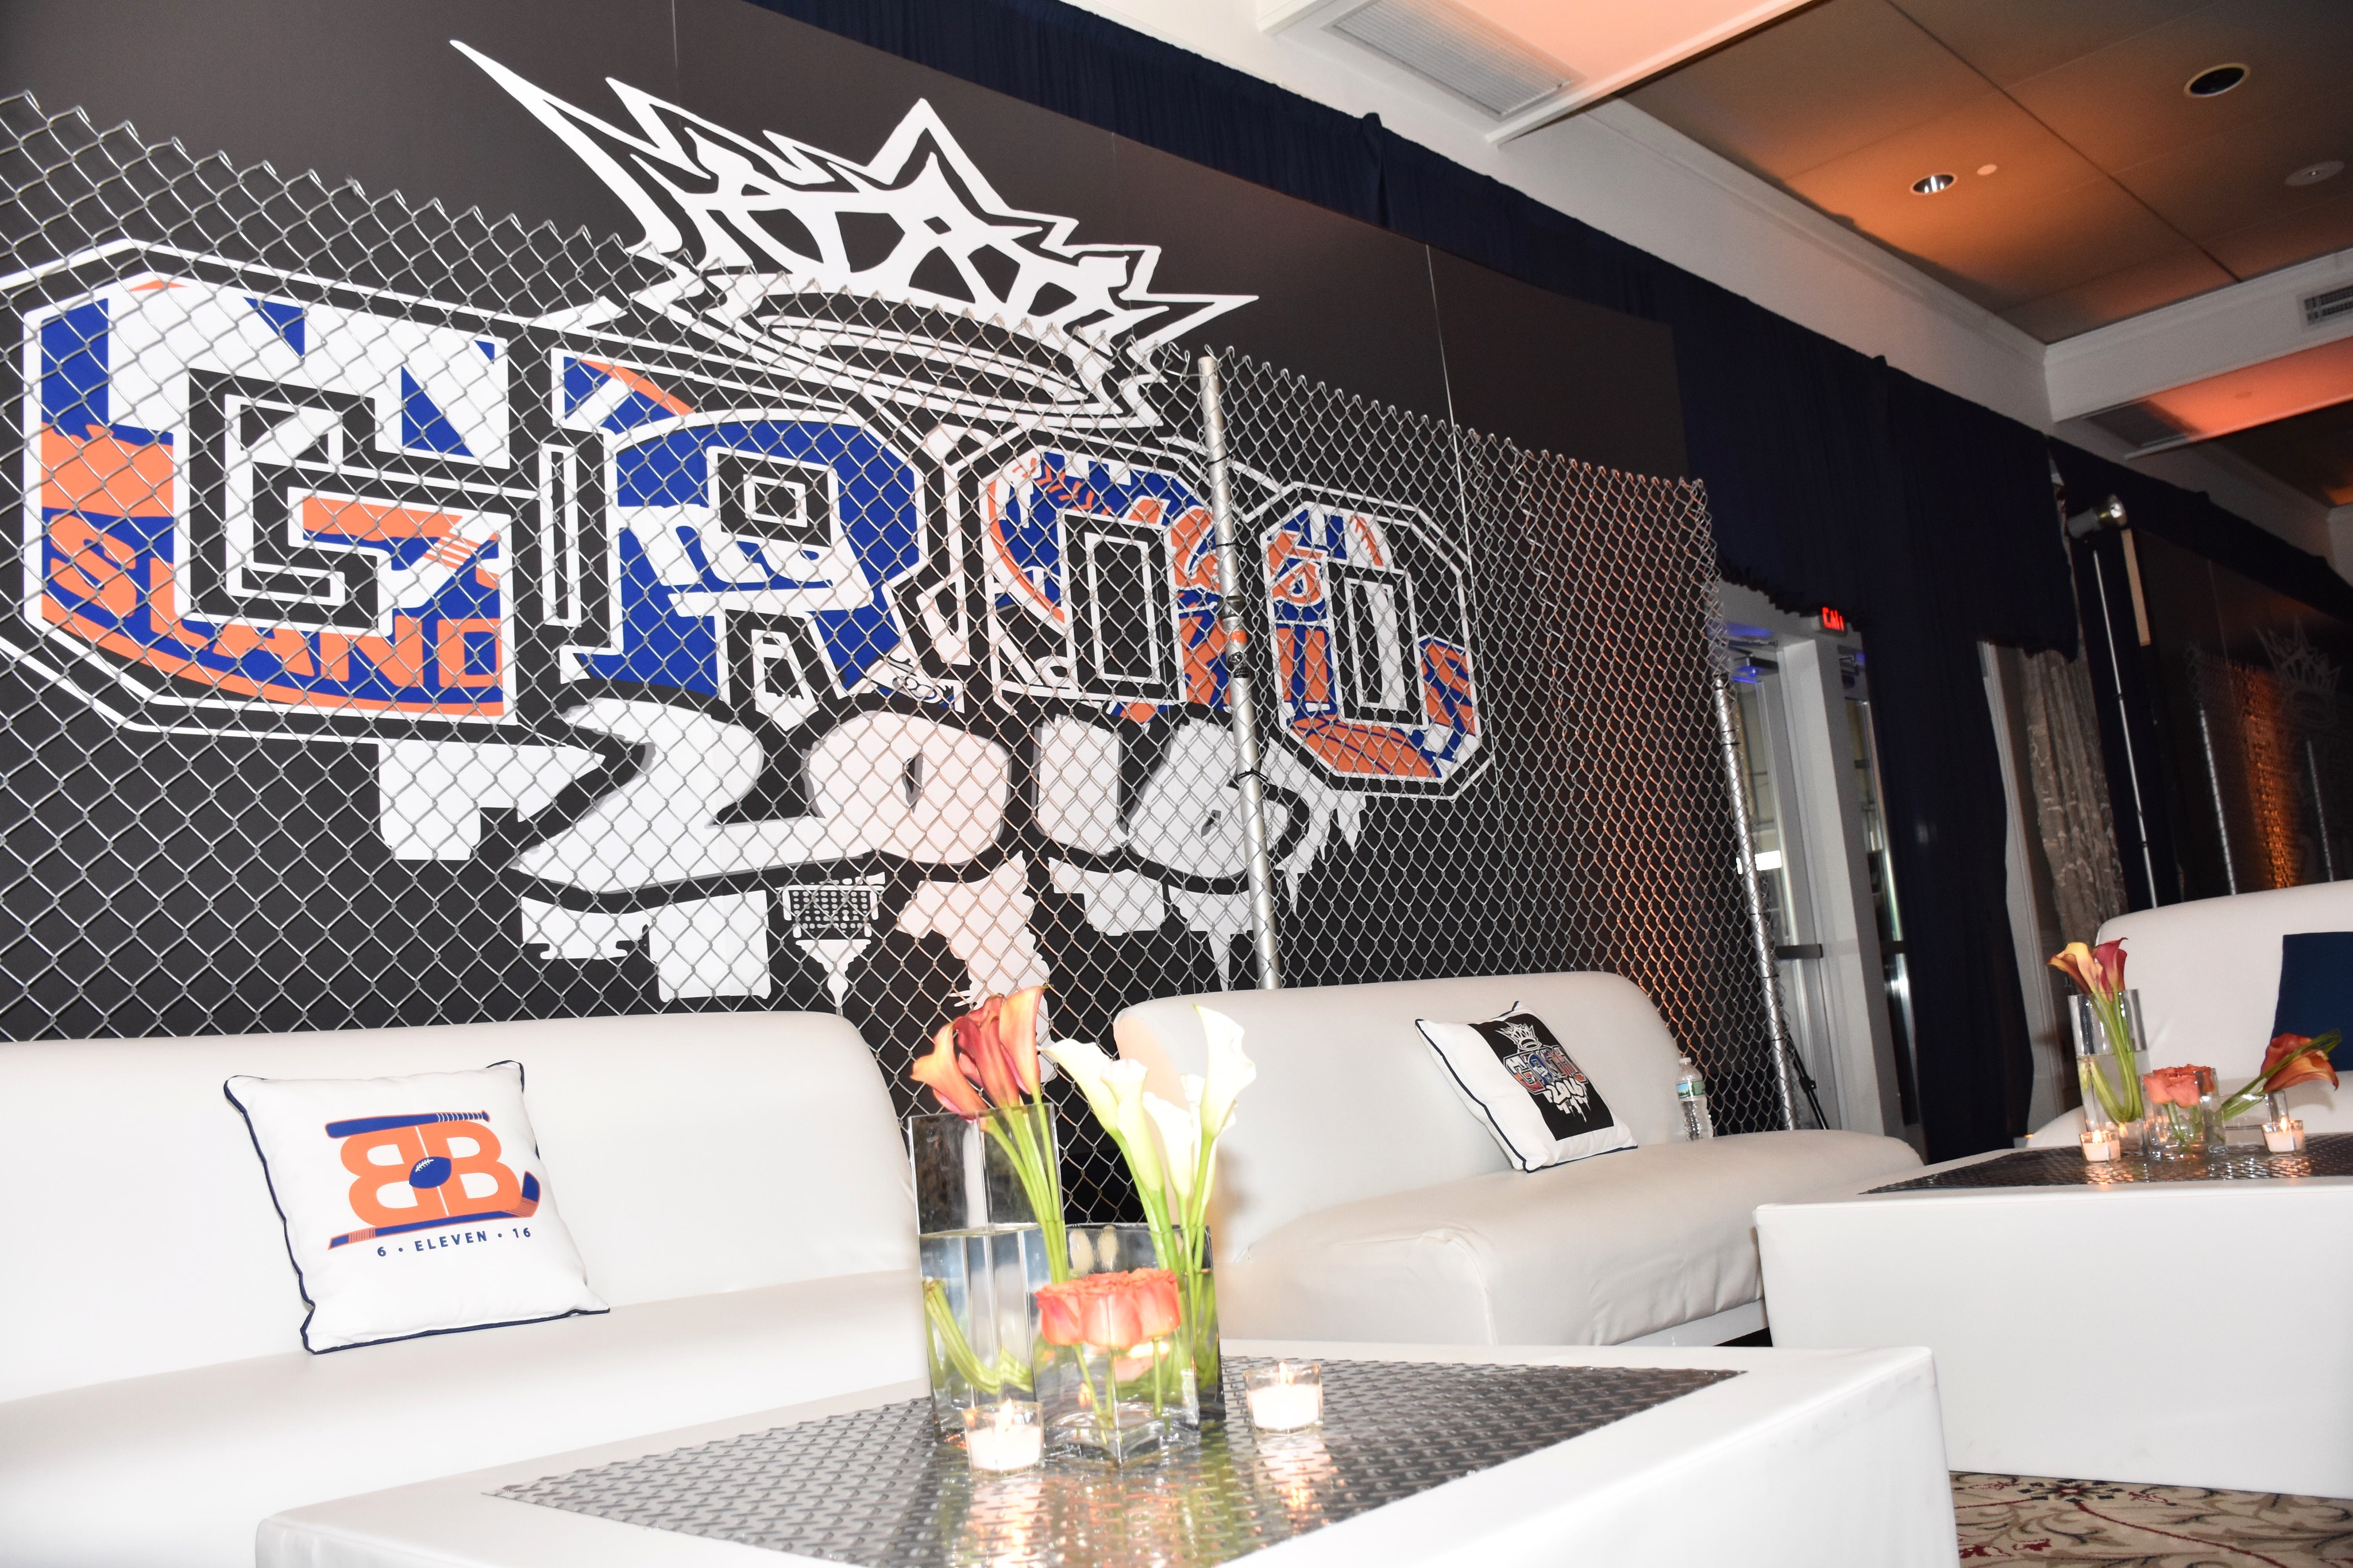 Bombshell Graphics Offers The Best Dance Floor and Custom Wall Graphics.